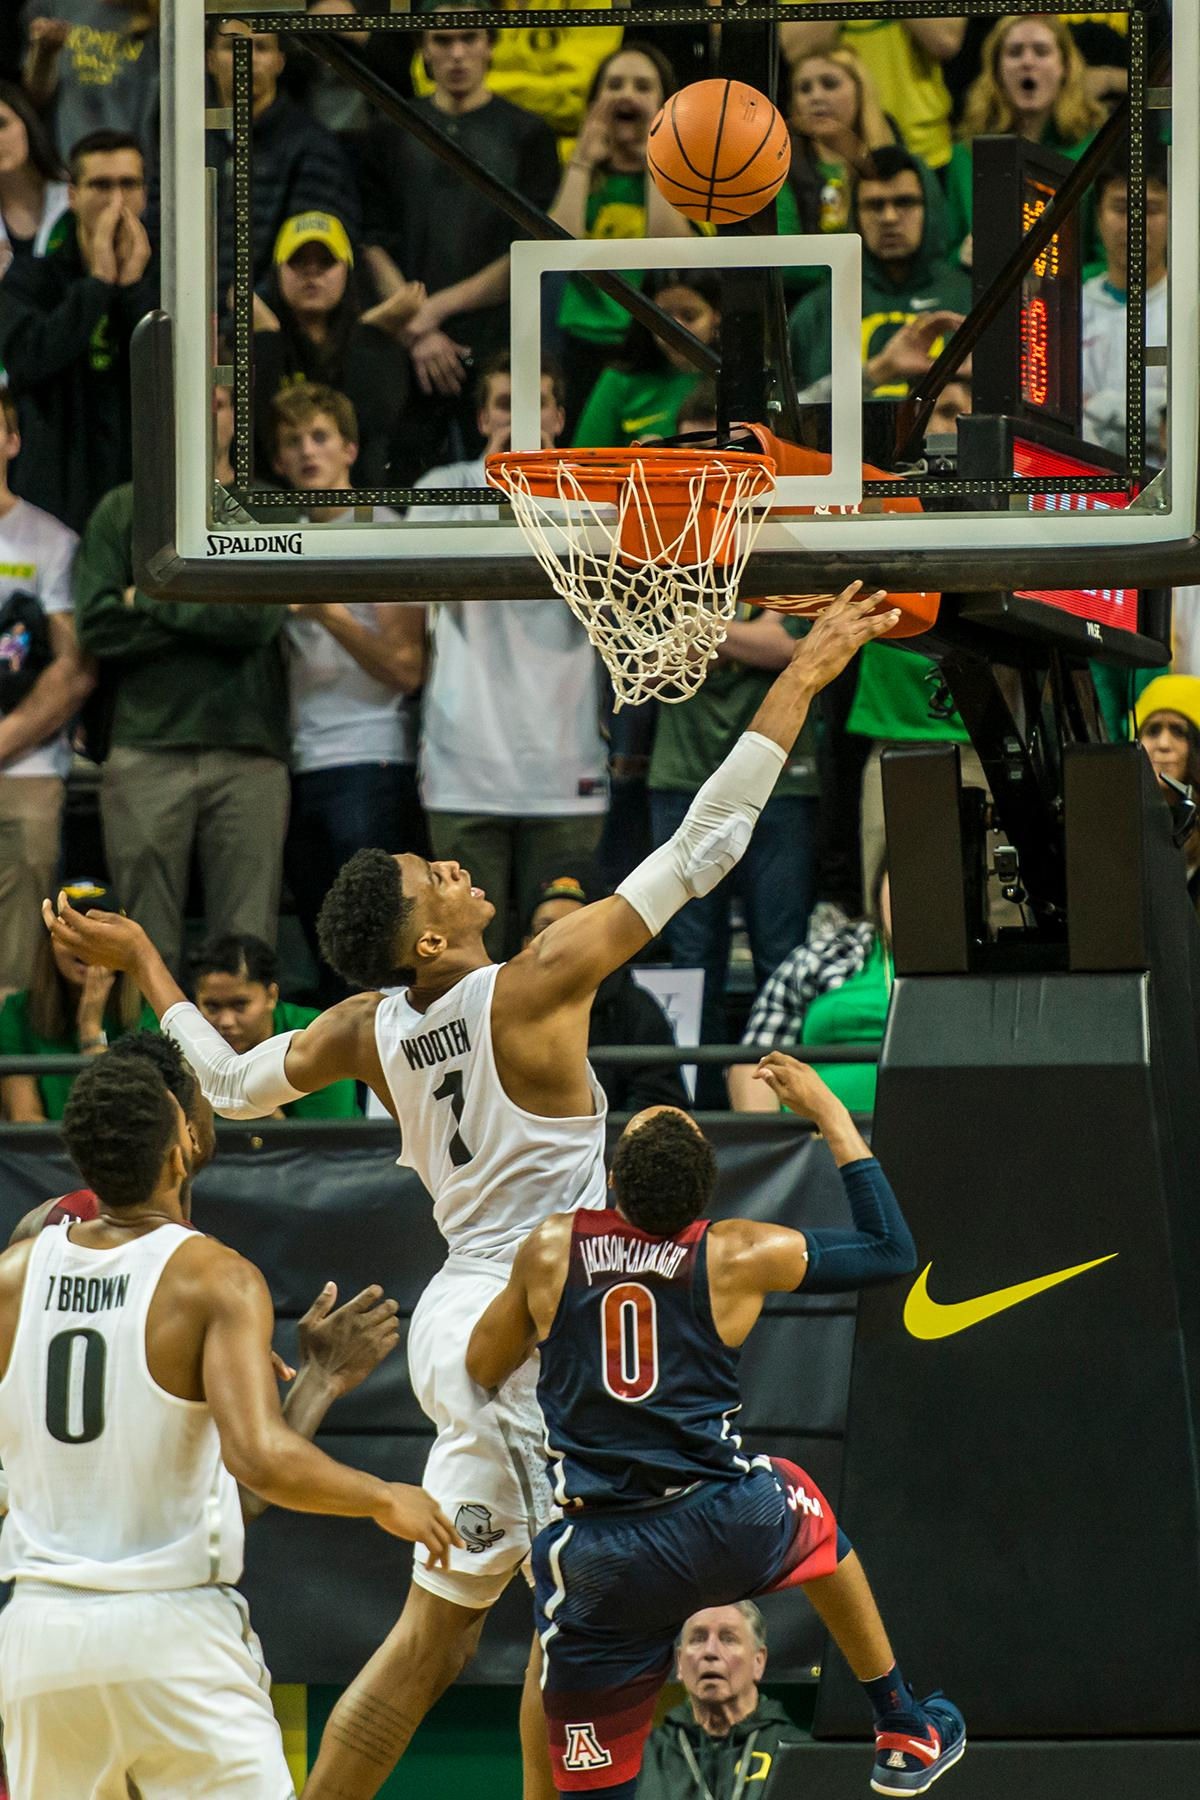 Oregon's Kenny Wooten (1) goes for a layup over Arizona's Jackson-Cartwright (0) in their matchup at Matthew Knight Arena Saturday. The Ducks upset the fourteenth ranked Wildcats 98-93 in a stunning overtime win in front of a packed house of over 12,000 fans for their final home game to improve to a 19-10 (9-7 PAC-12) record on the season. Oregon will finish out regular season play on the road in Washington next week against Washington State on Thursday, then Washington on the following Saturday. (Photo by Colin Houck)